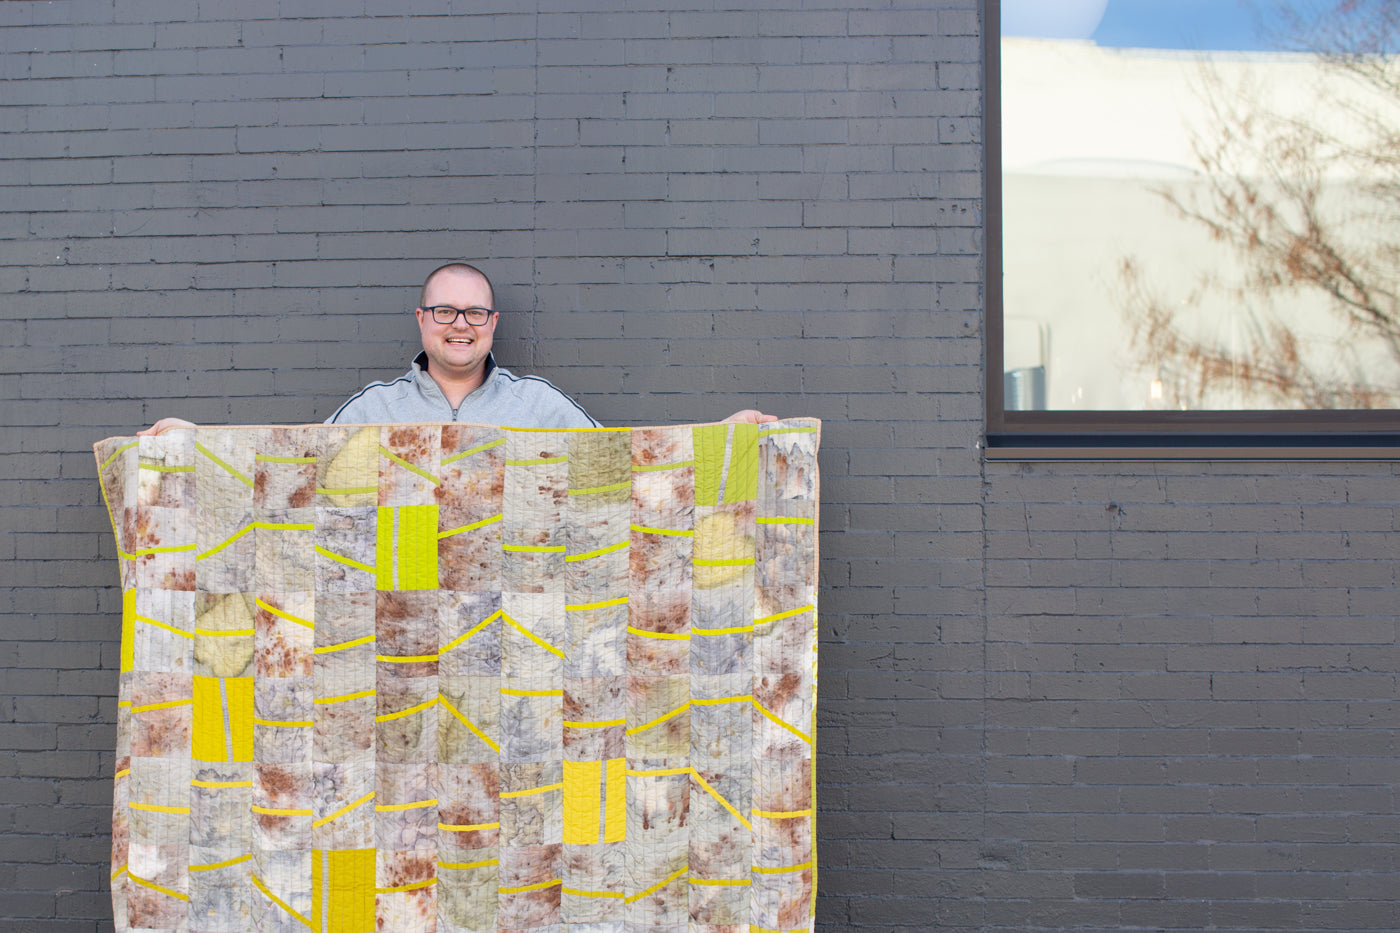 Man holding up quilt in front of a grey brick wall.  Man is wearing a light grey shirt, glasses and is holding up a quilt with brown, green soft color hues and blocks of bright yellow and green squares.